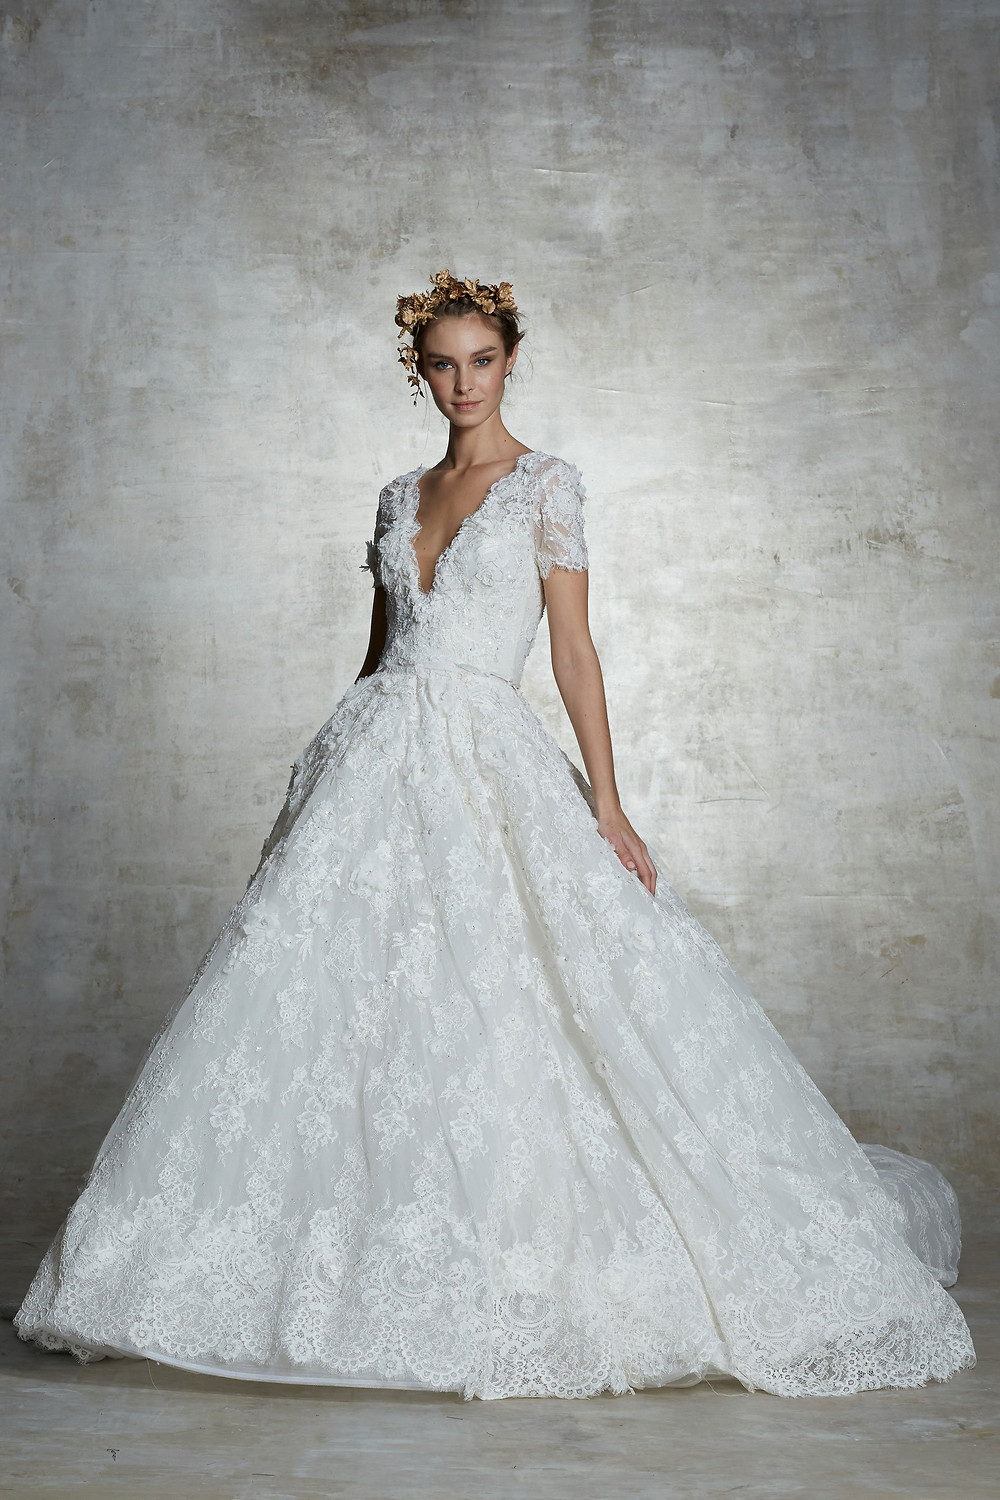 A Marchesa lace ball gown wedding dress with cap sleeves and a v neckline